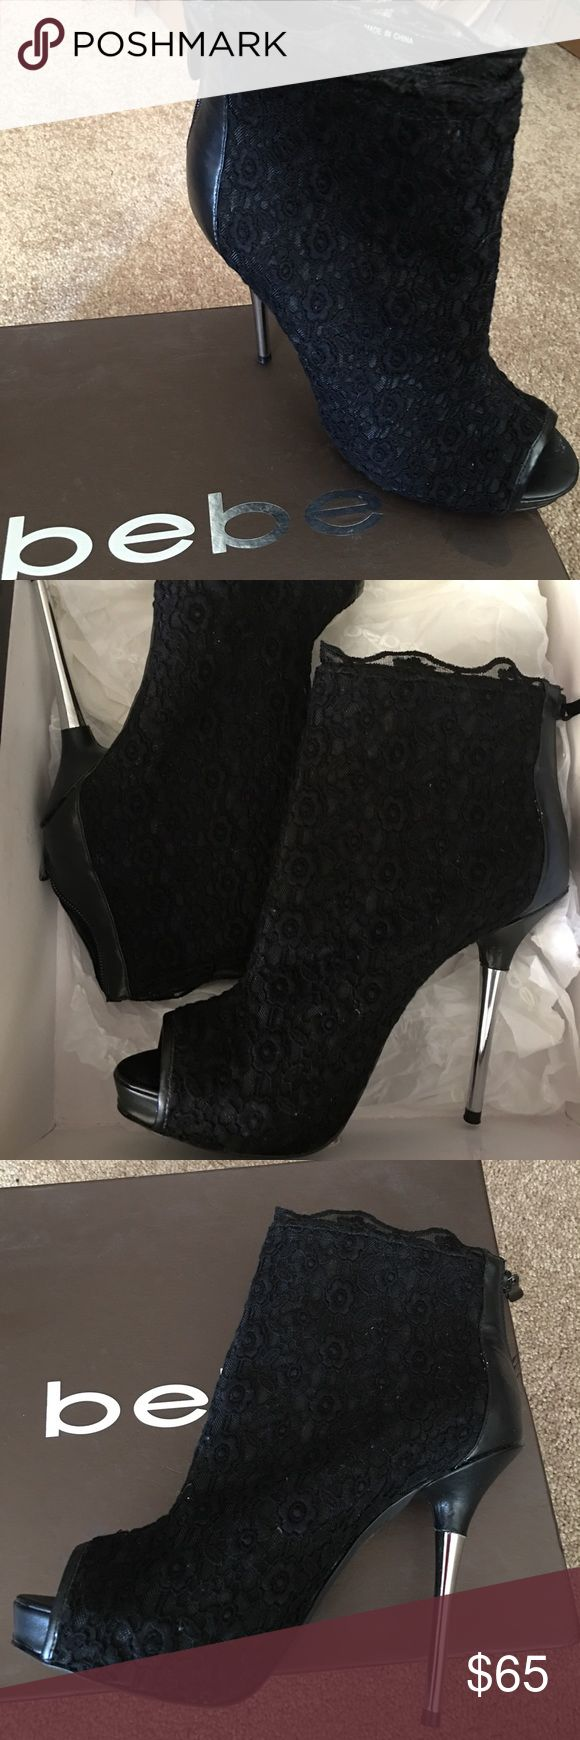 BEBE BLACK LACE BOOTIES WORN TWICE! BEBE FASHION! Bebe Shoes Ankle Boots & Booties